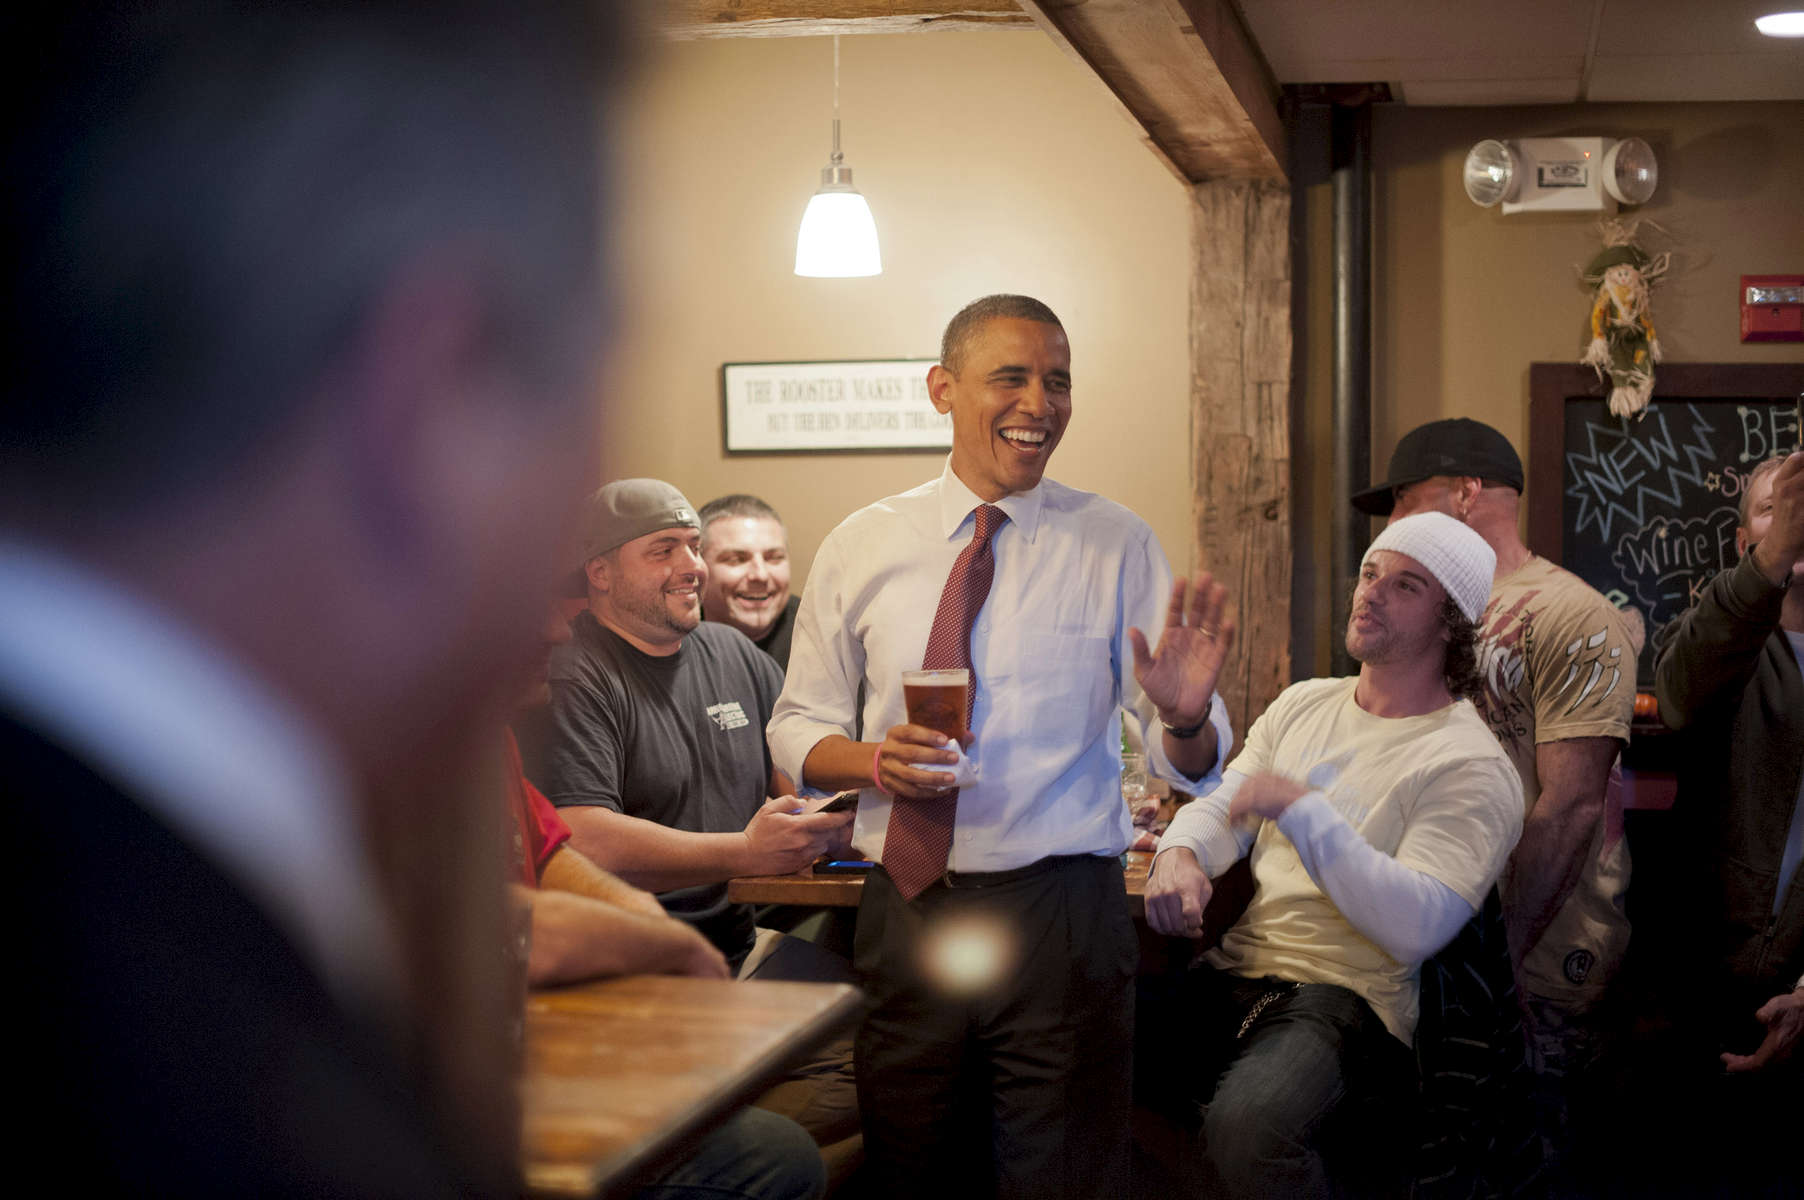 October 27, 2012 - Merrimack, NH:  President Barack Obama jokes around with patrons at the Common Man Pub in Merrimack, NH.  (Scout Tufankjian for Obama for America/Polaris)